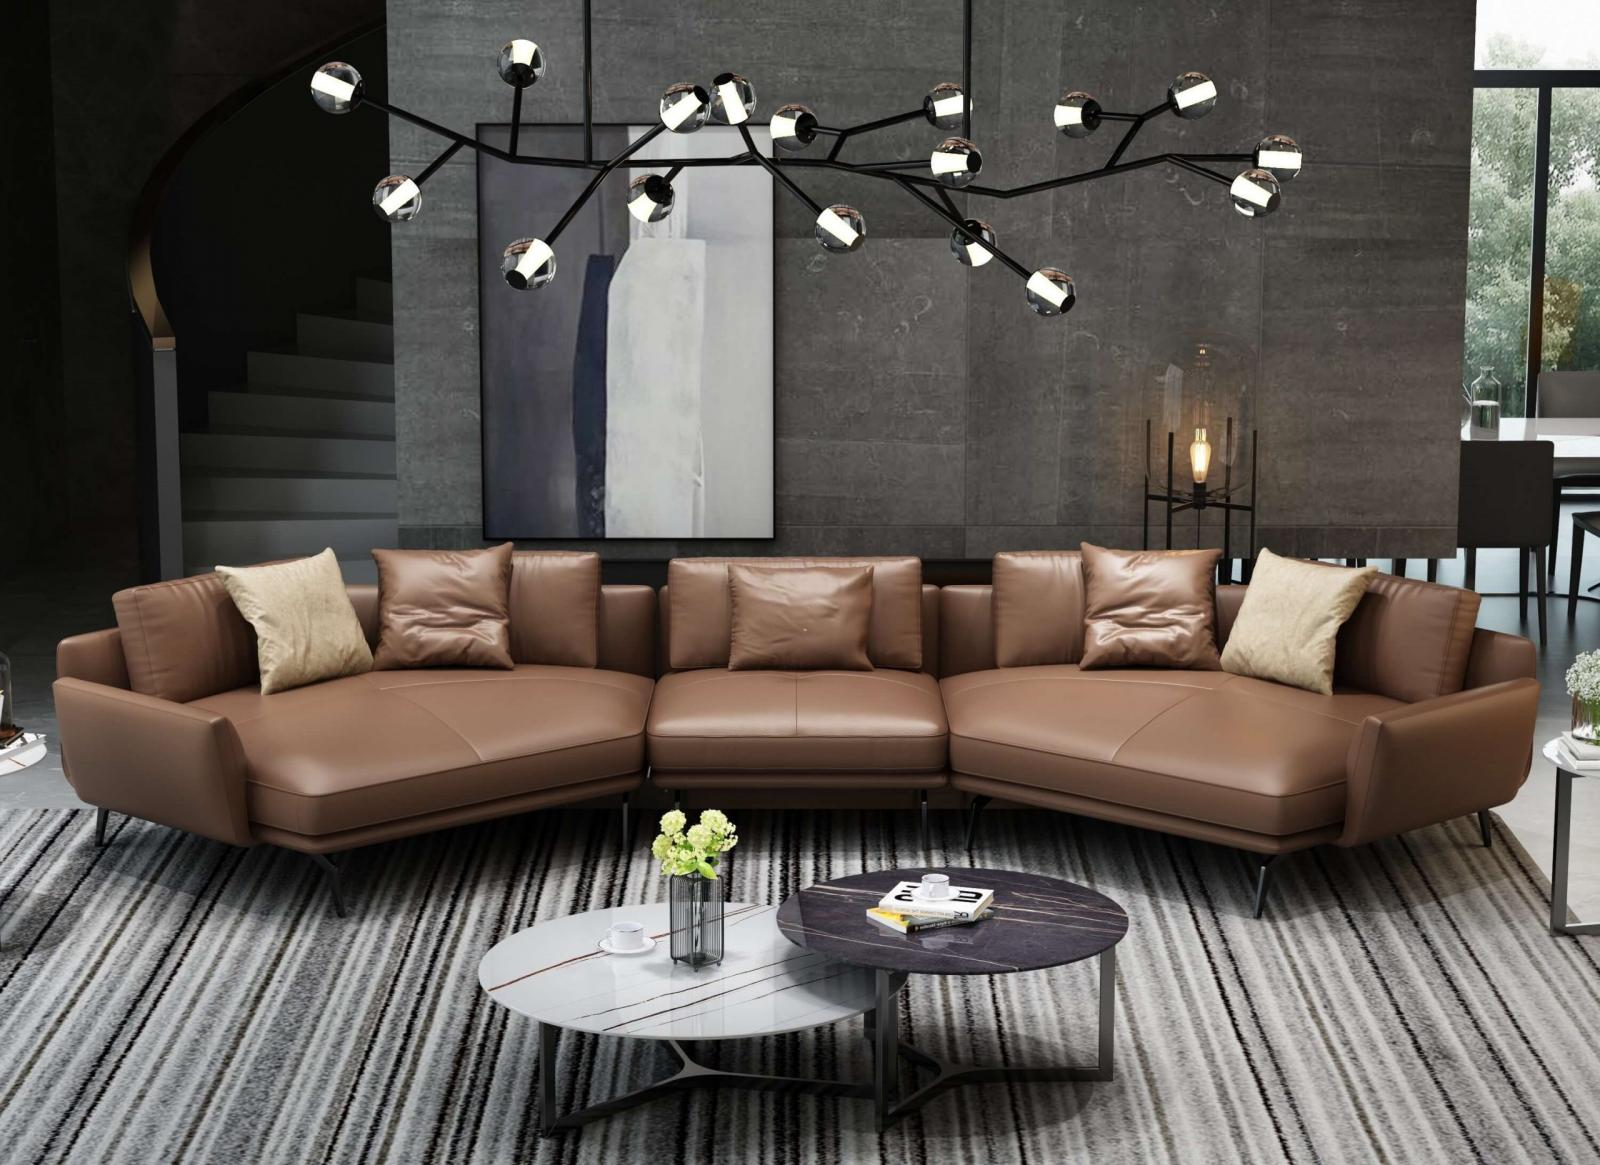 Modern  Vintage Brown Wood  Genuine leather  Solid Hardwood and Italian Leather Sectional Sofa EUROPEAN FURNITURE EF-65550-5S